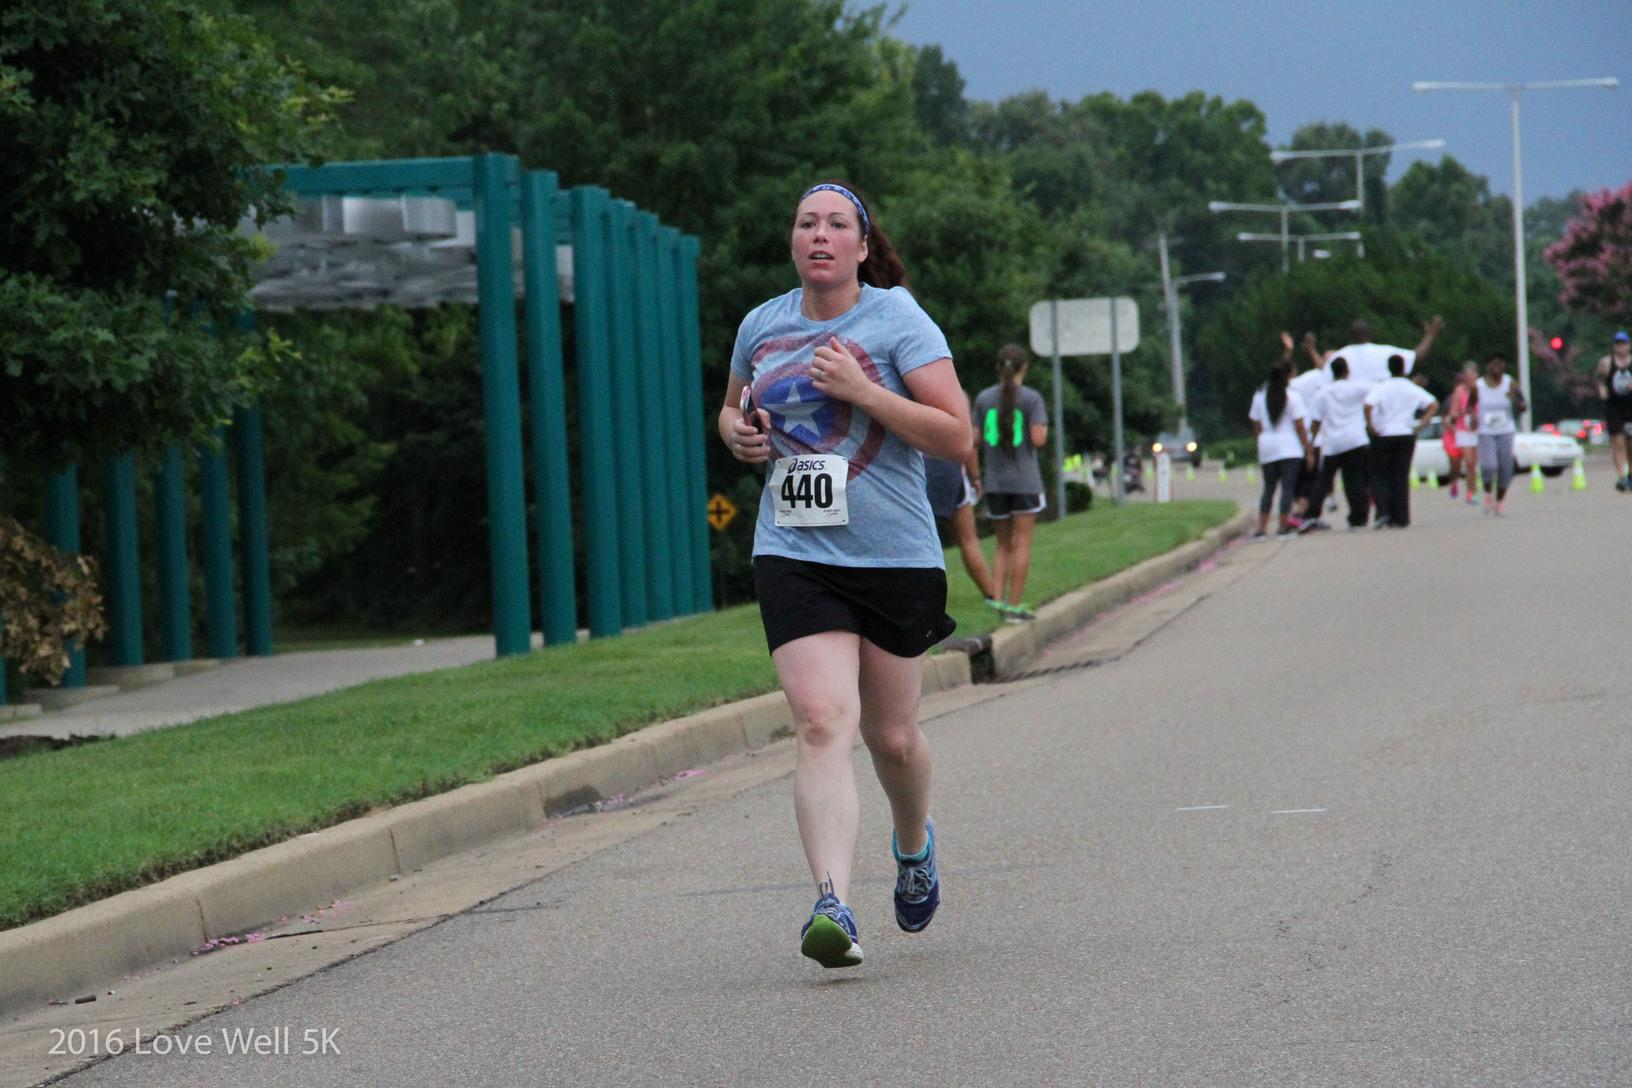 Love Well 5k event 2016